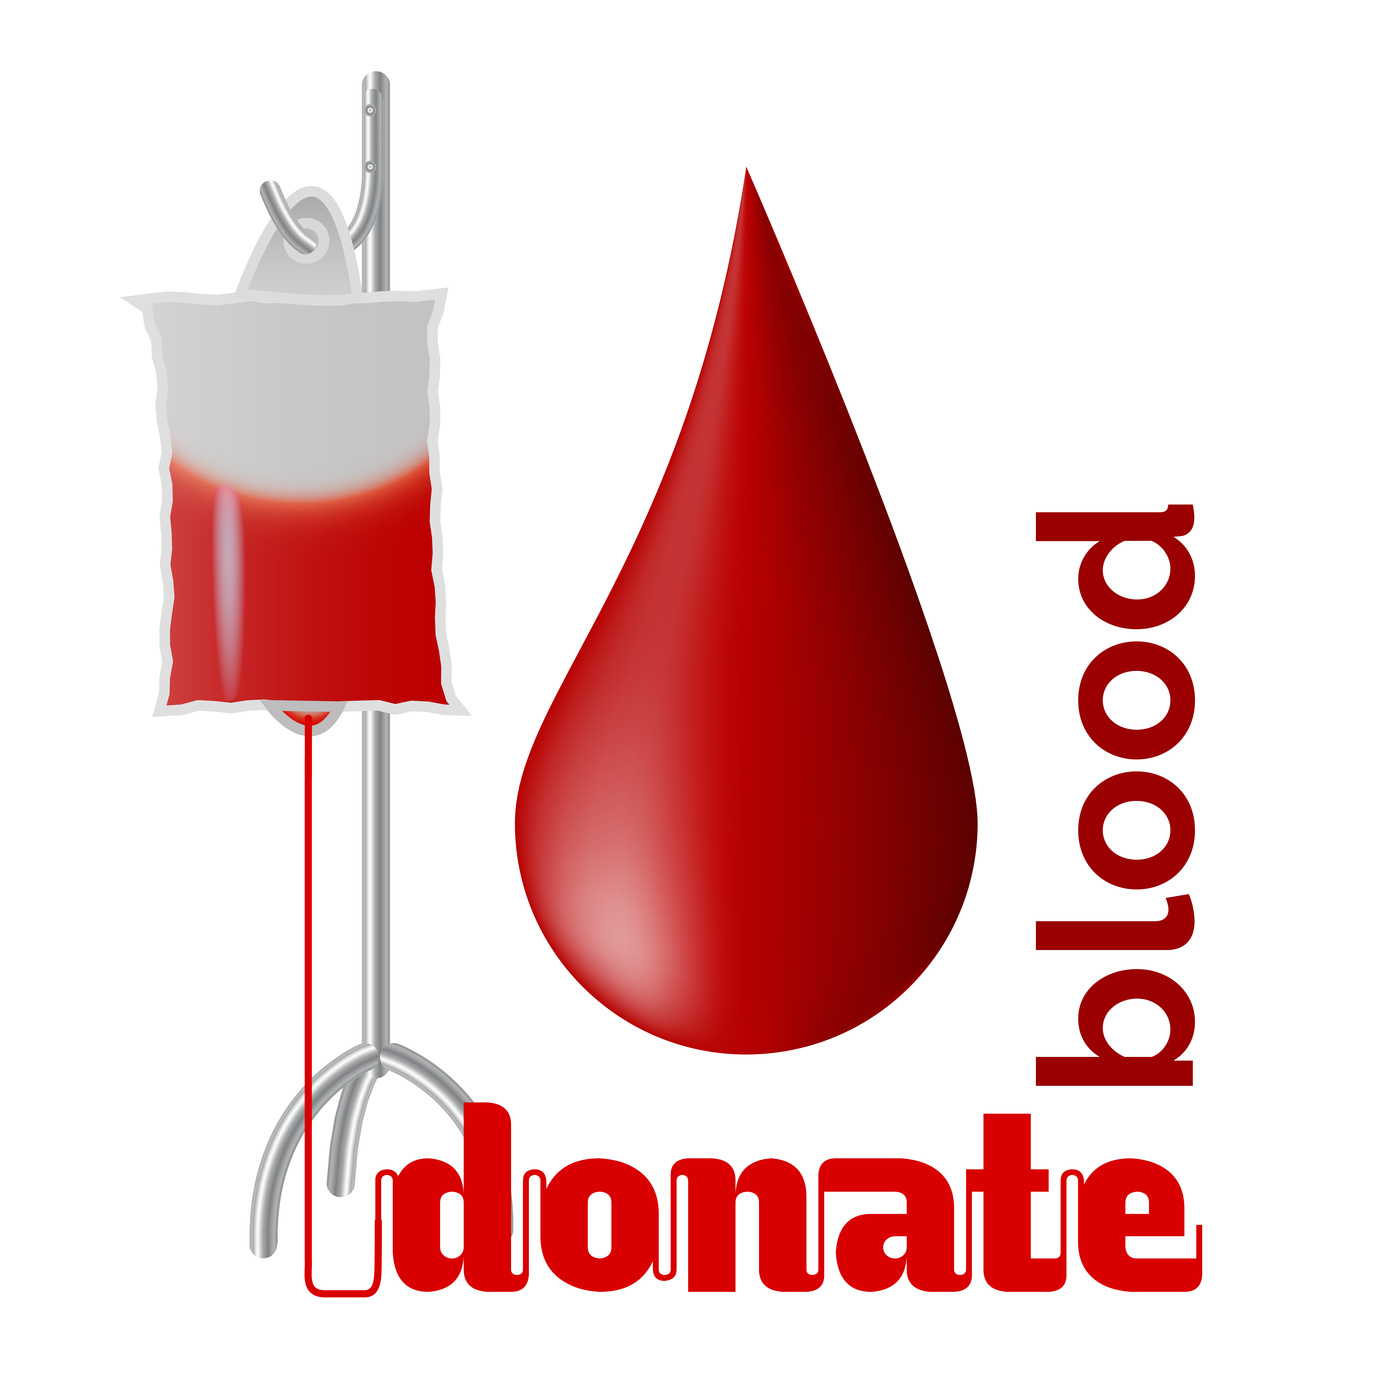 giving blood clipart - photo #41